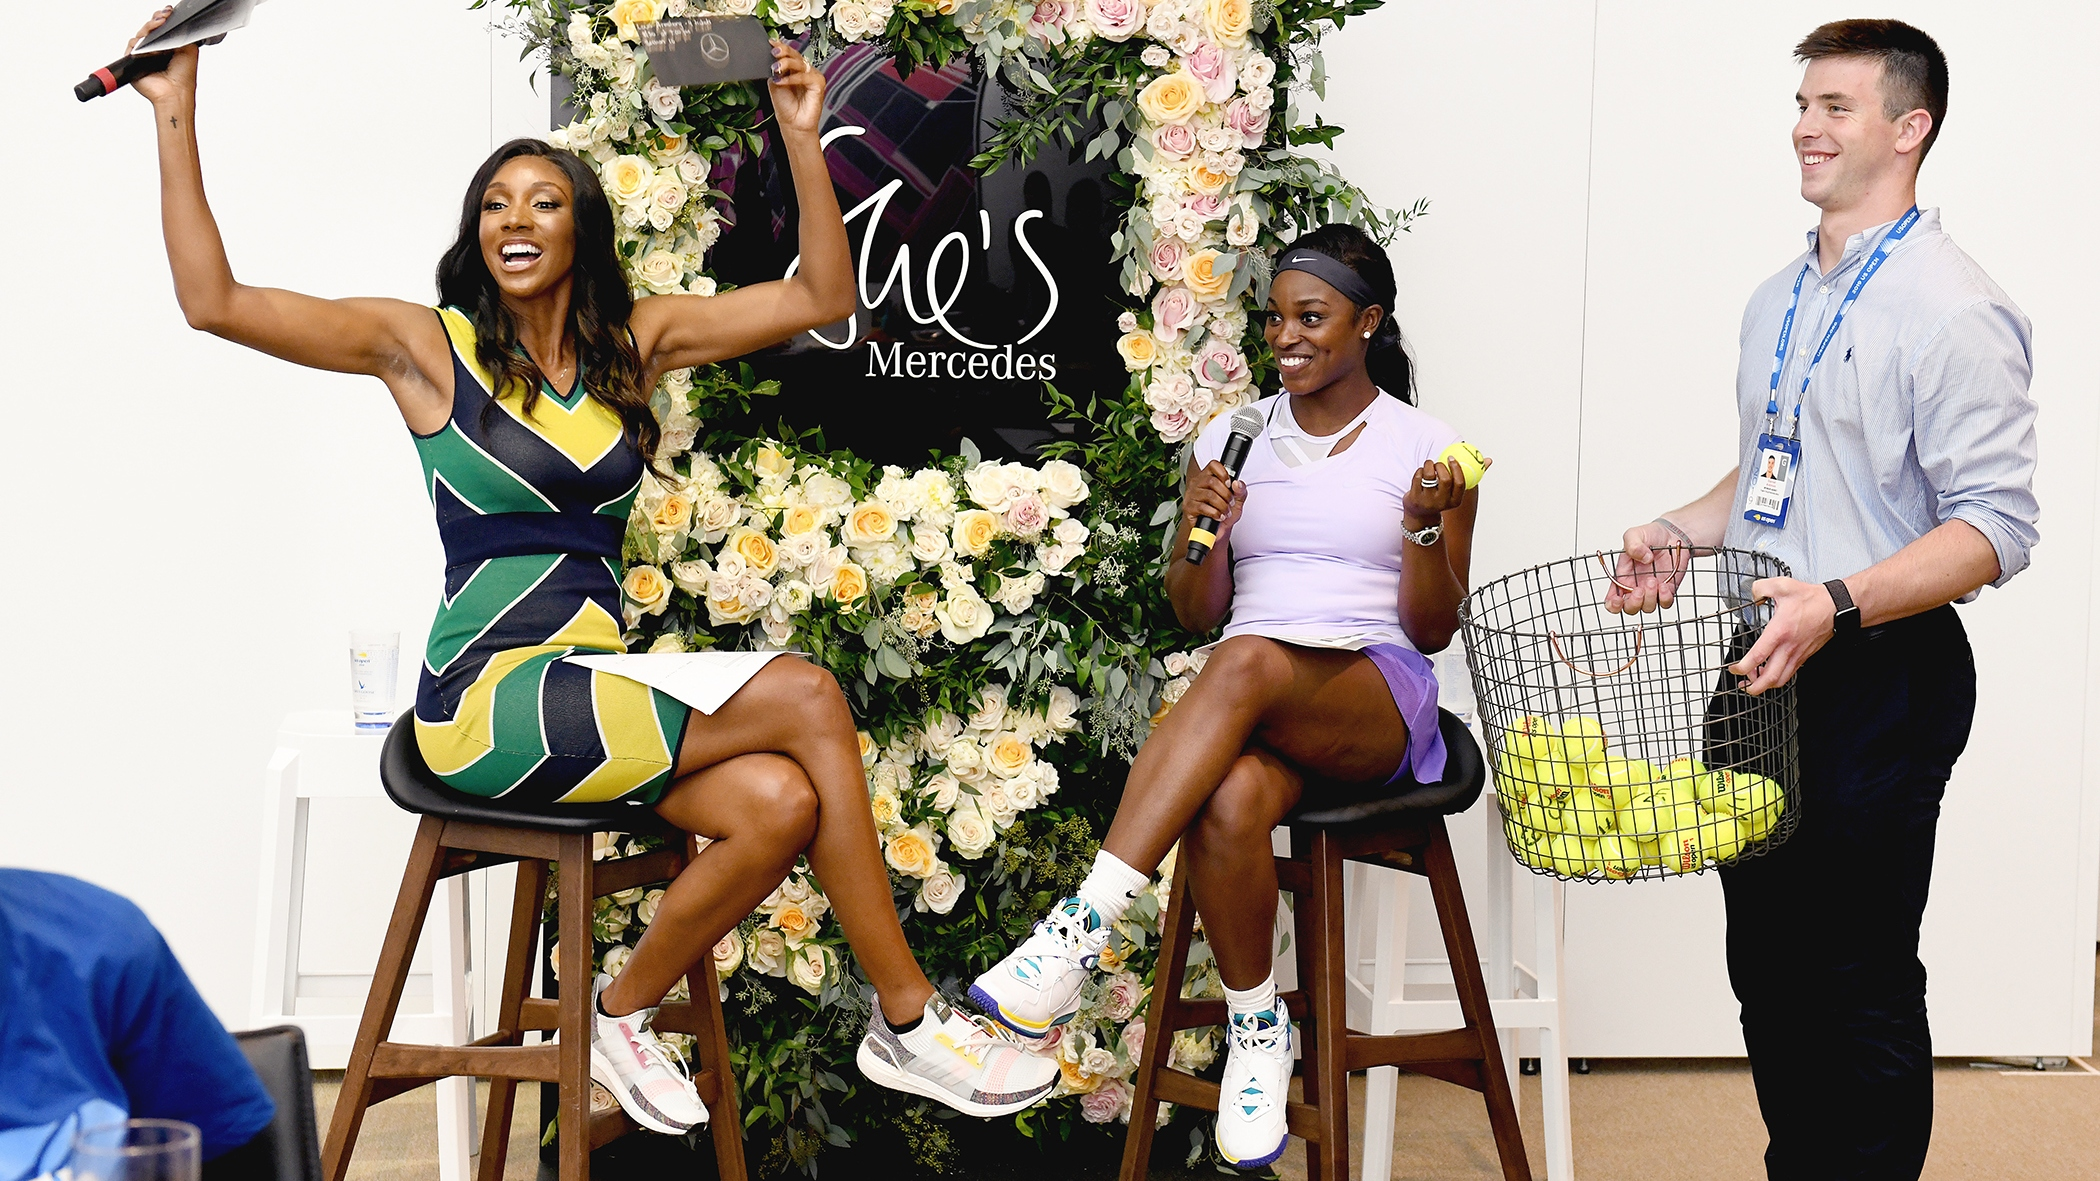 Sloane Stephens and ESPN's Maria Taylor conduct a Q&A at a Mercedes event.